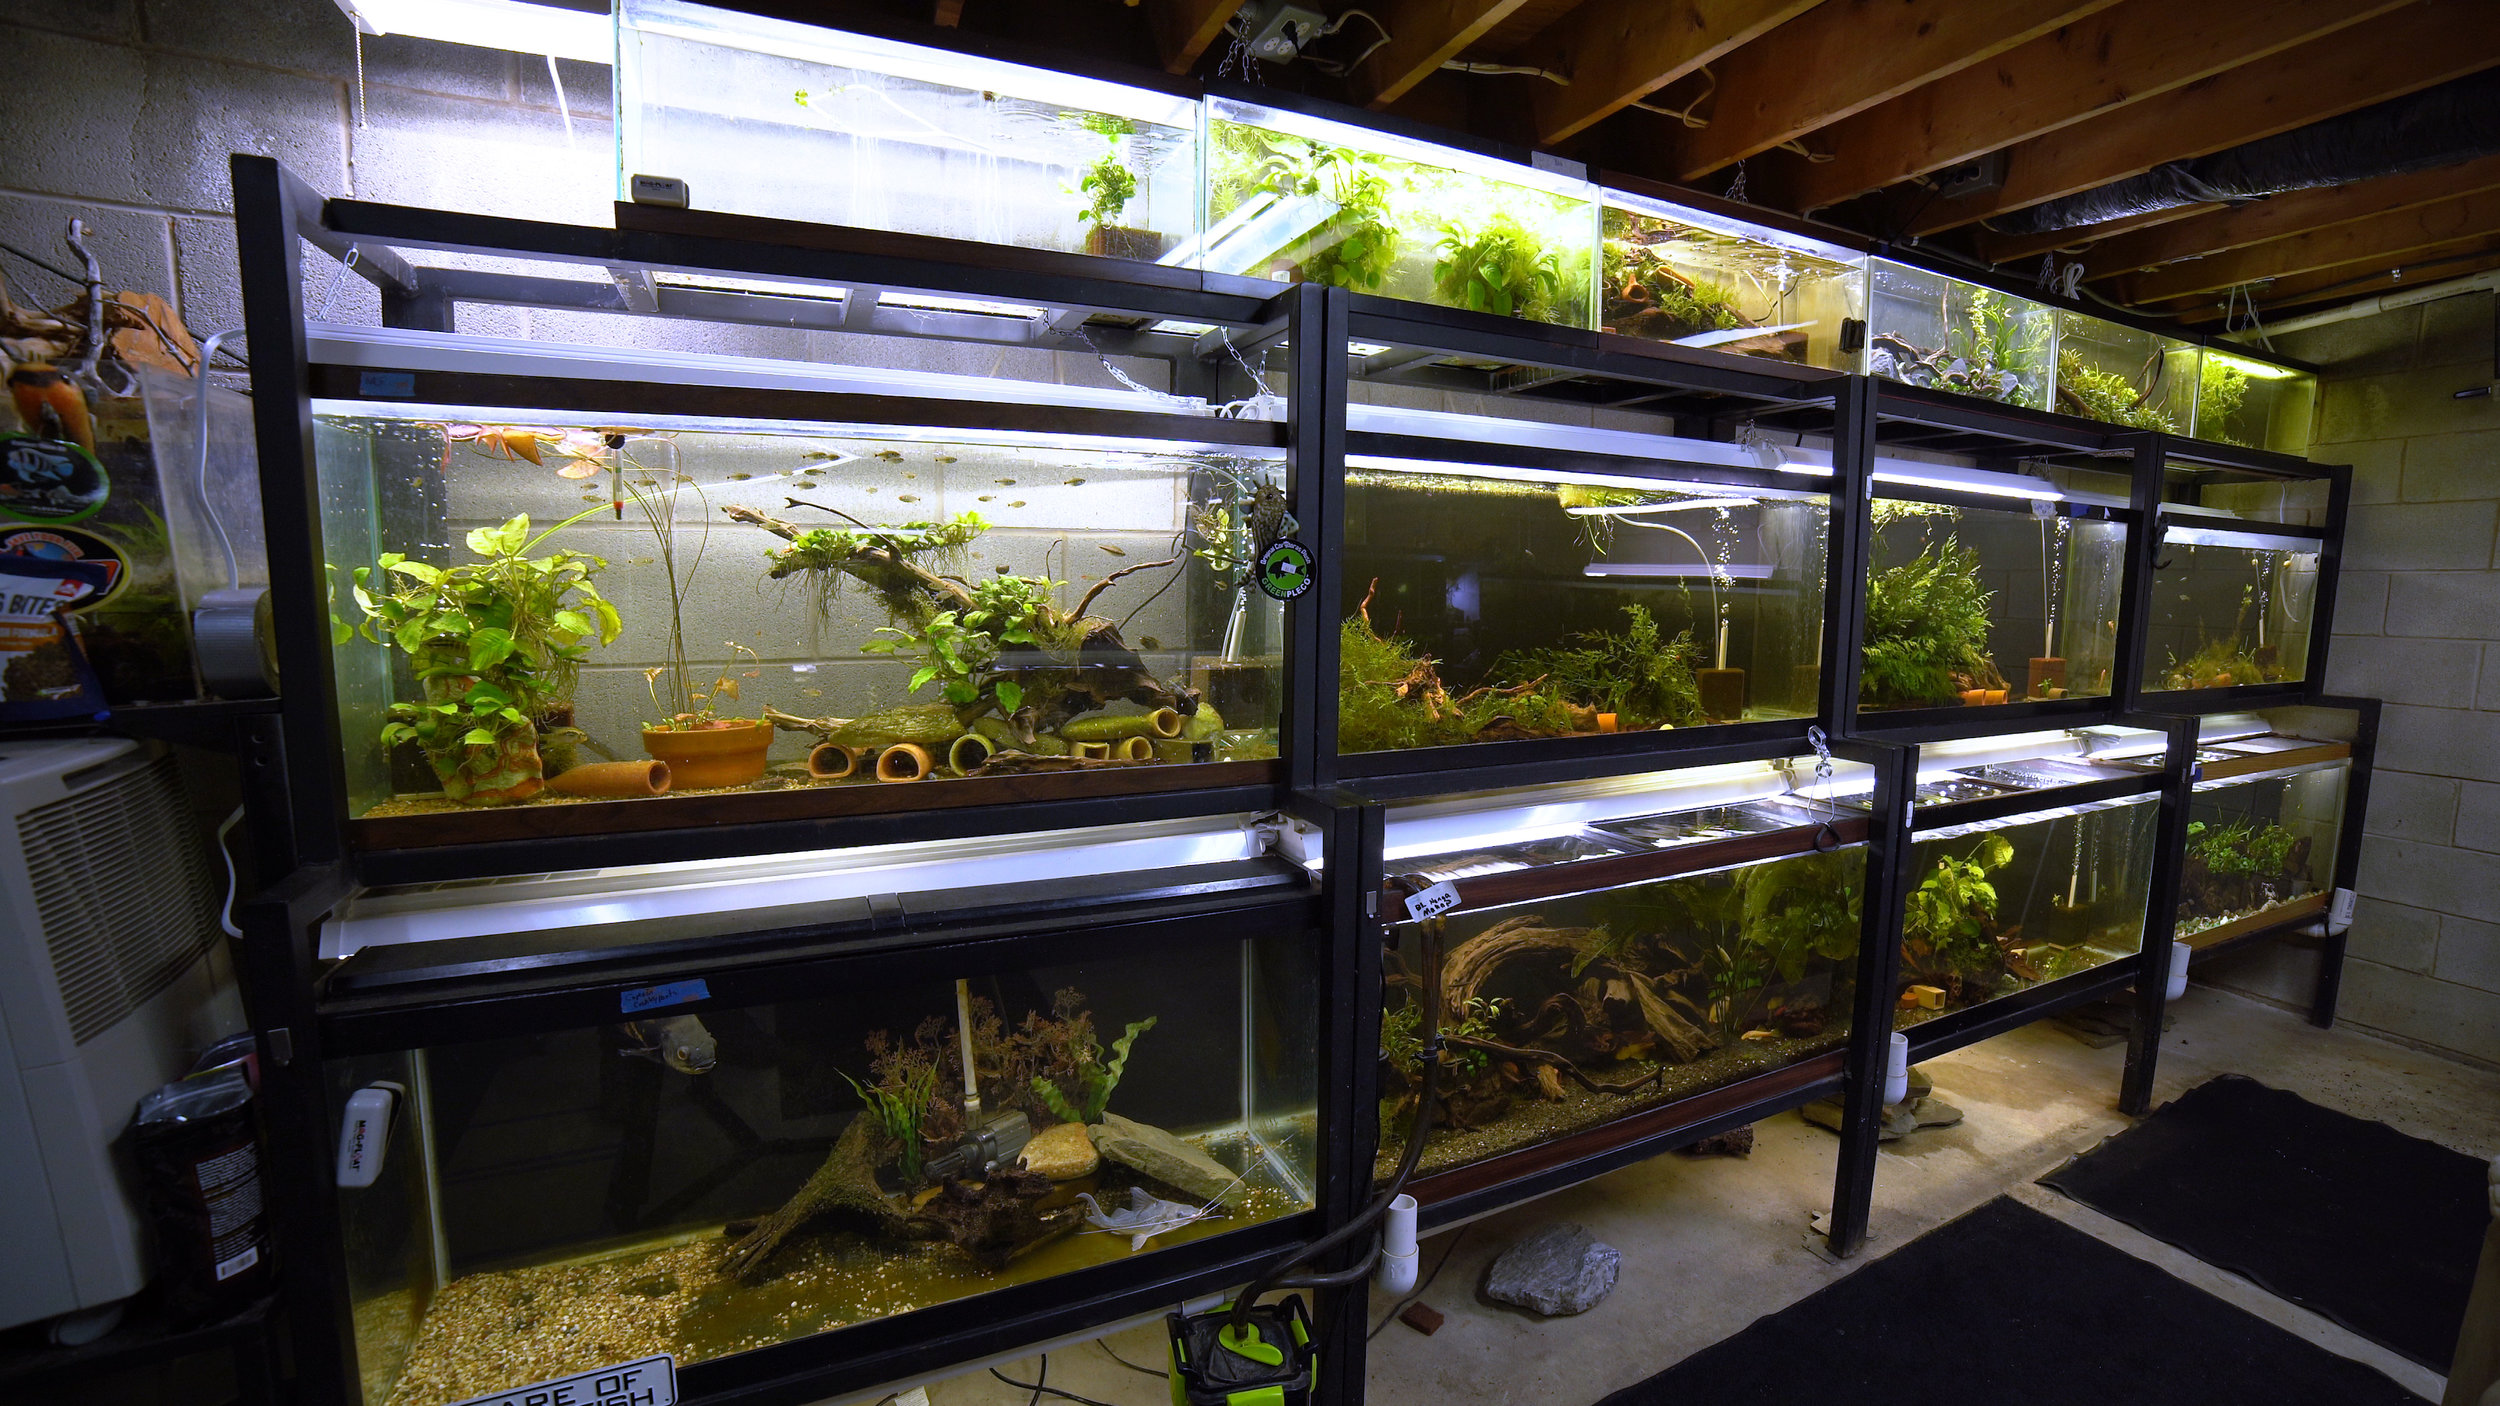 Some of the many racks that make up the fishroom. Each four-foot rack holds one 75-gallon aquarium on the bottom, a 55-gallon aquarium in the middle, and one or two 20-gallon tanks on top.